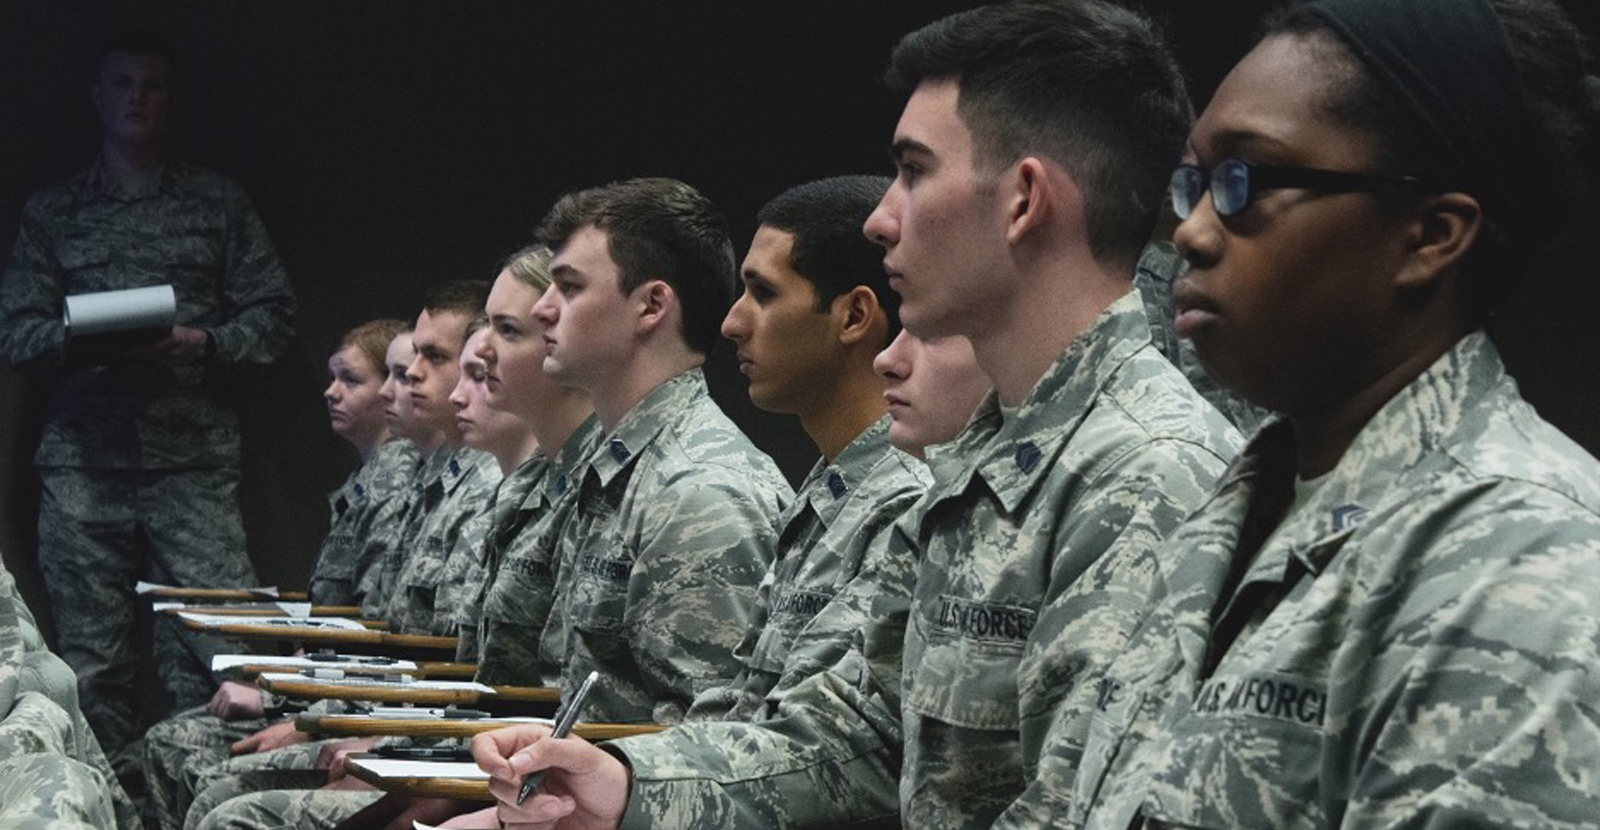 AFROTC Detachment 250<br> Developing Quality Leaders Since 1949